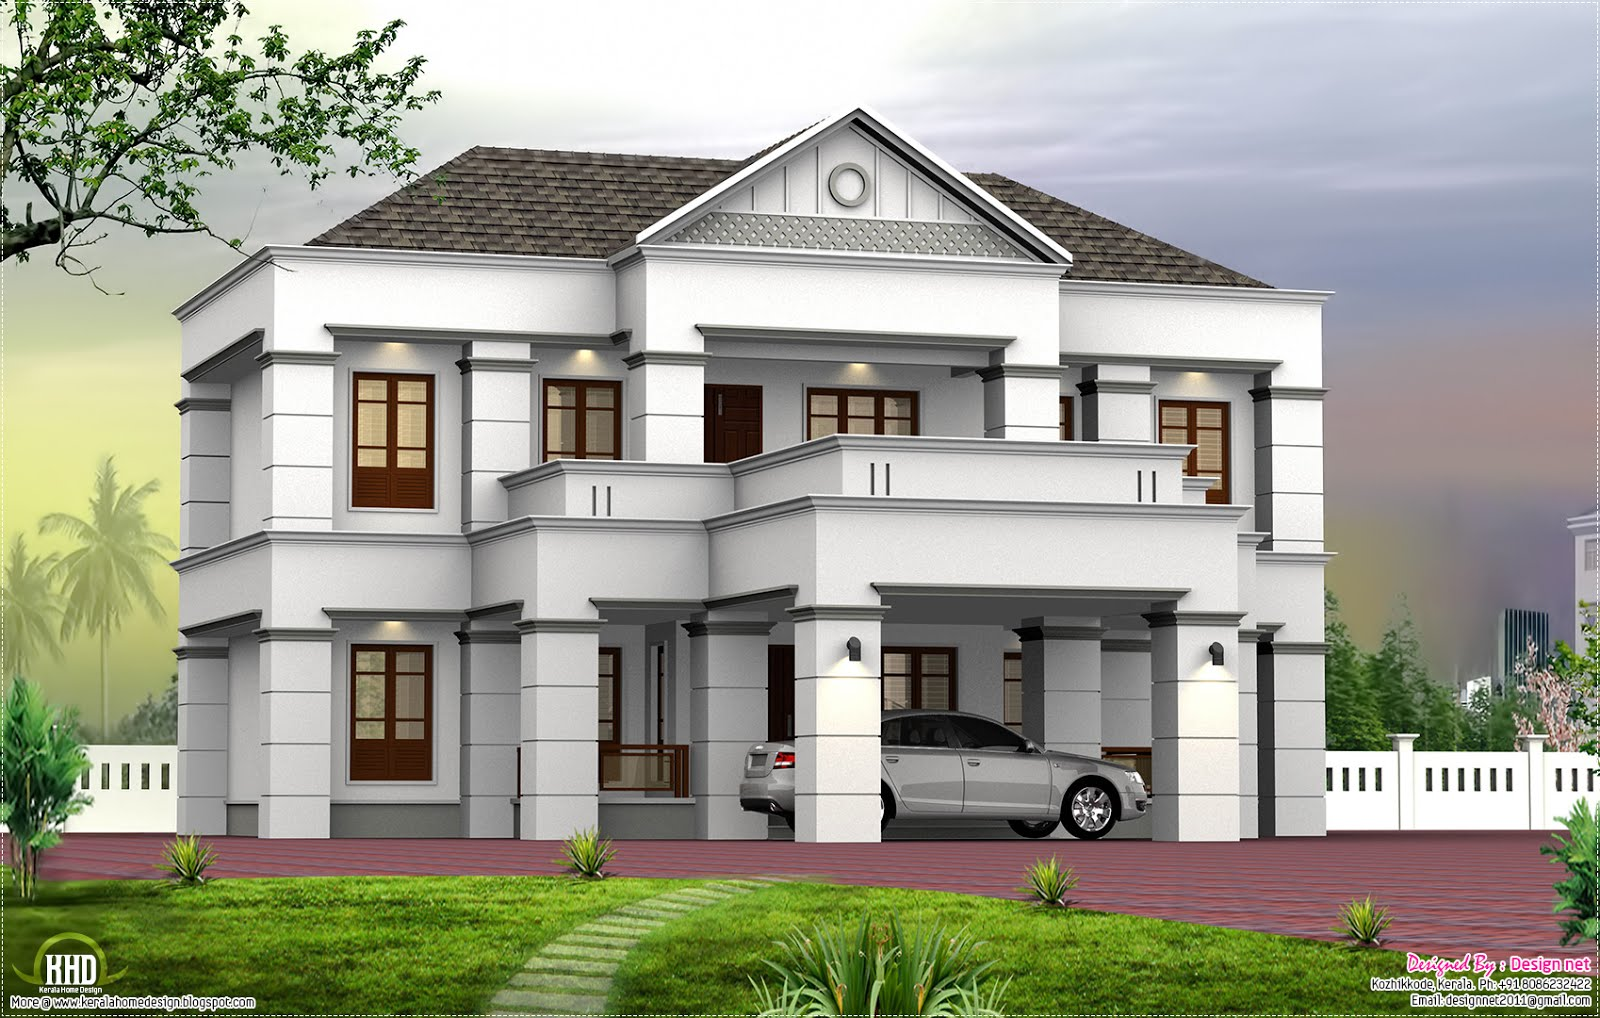 Kerala House Models furthermore Modern Flat Roof Contemporary Home in addition Traditional Mix Kerala Home furthermore 2012 09 01 archive likewise 1500 Square Feet 3 Bedroom Villa. on modern mix luxury home design kerala